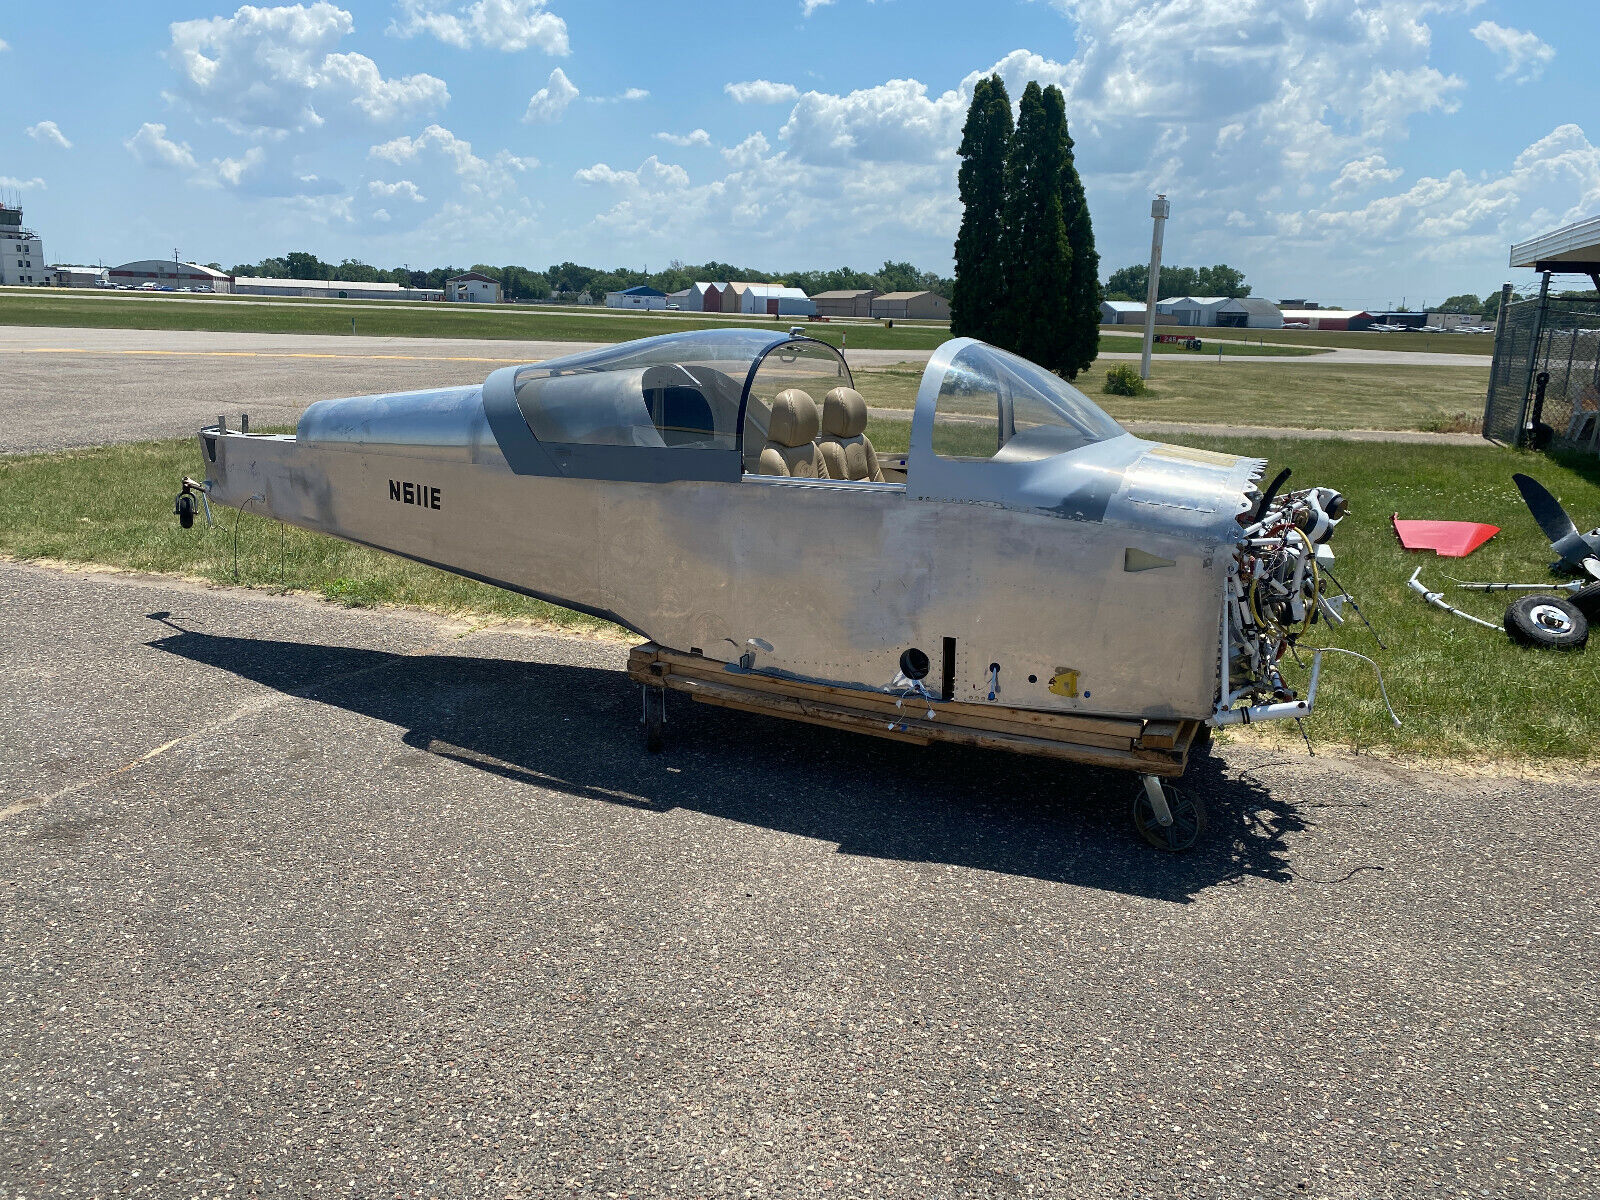 2021 VANS RV-7 AIRFRAME, 4 HOURS SINCE NEW, OFF FIELD LANDING WITH DAMAGE, CHEAP